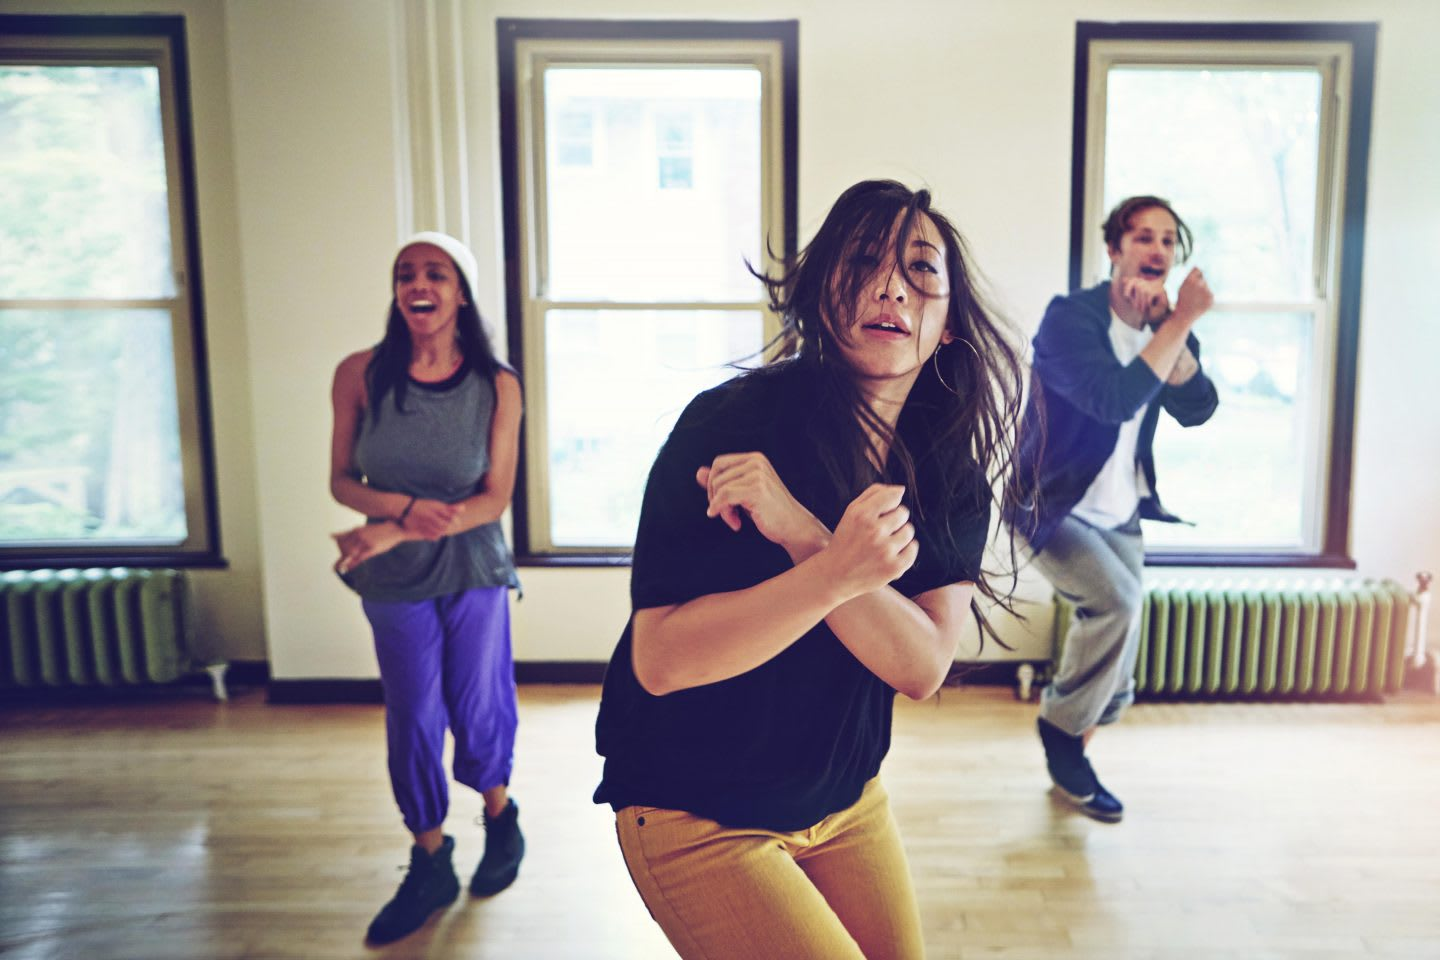 Three people dancing in a dance studio, friends, music, movement, active, fun